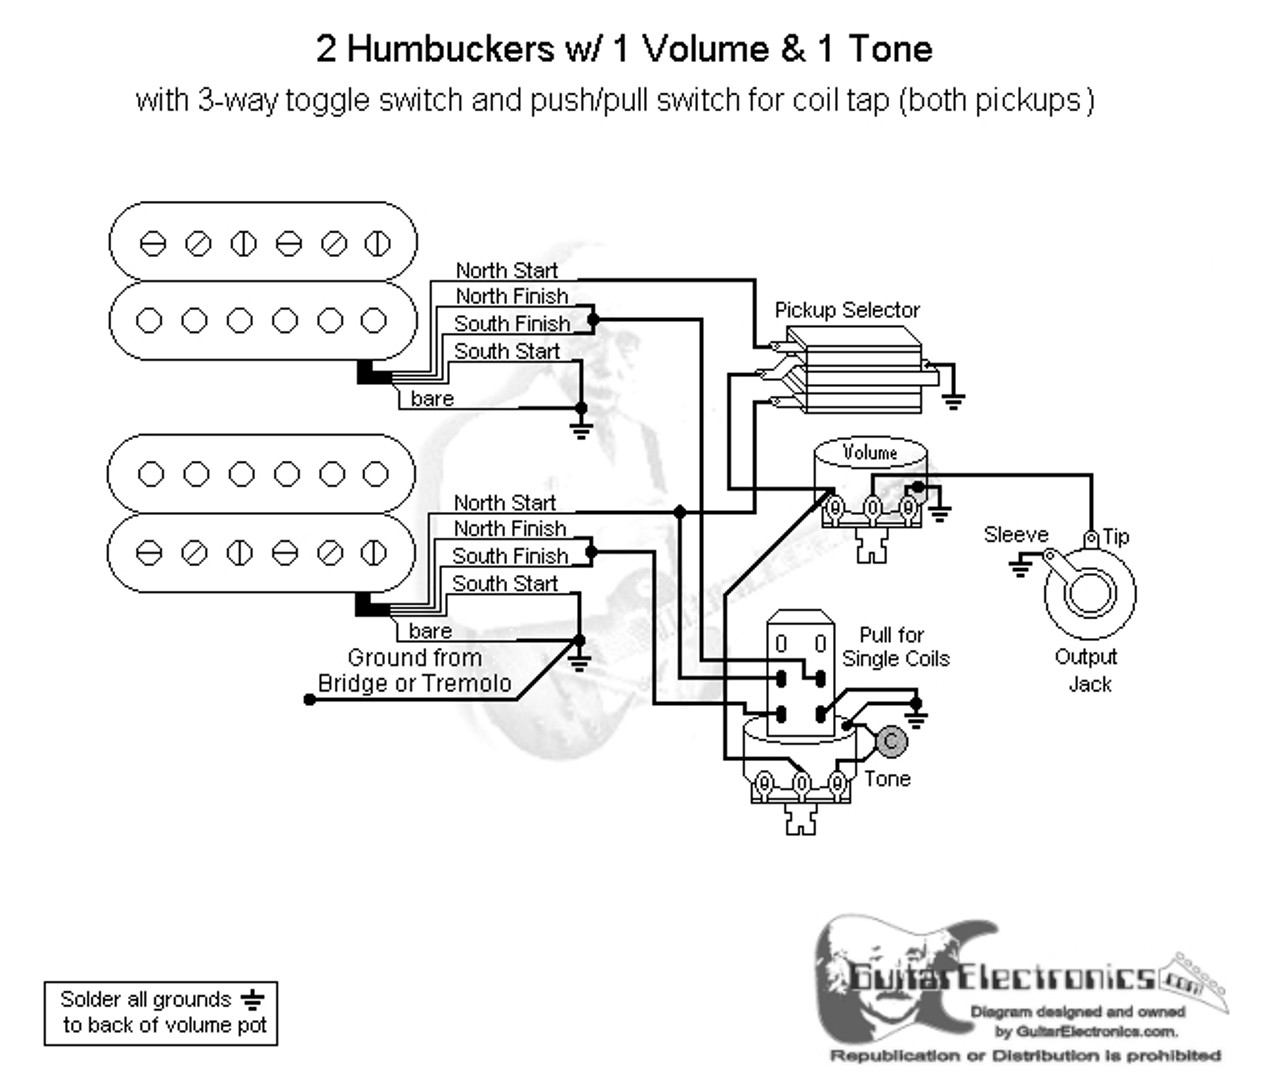 2 humbuckers 3 way toggle switch 1 volume 1 tone coil tap model wiring diagram wd2hh3t11 01 45715 [ 1280 x 1083 Pixel ]